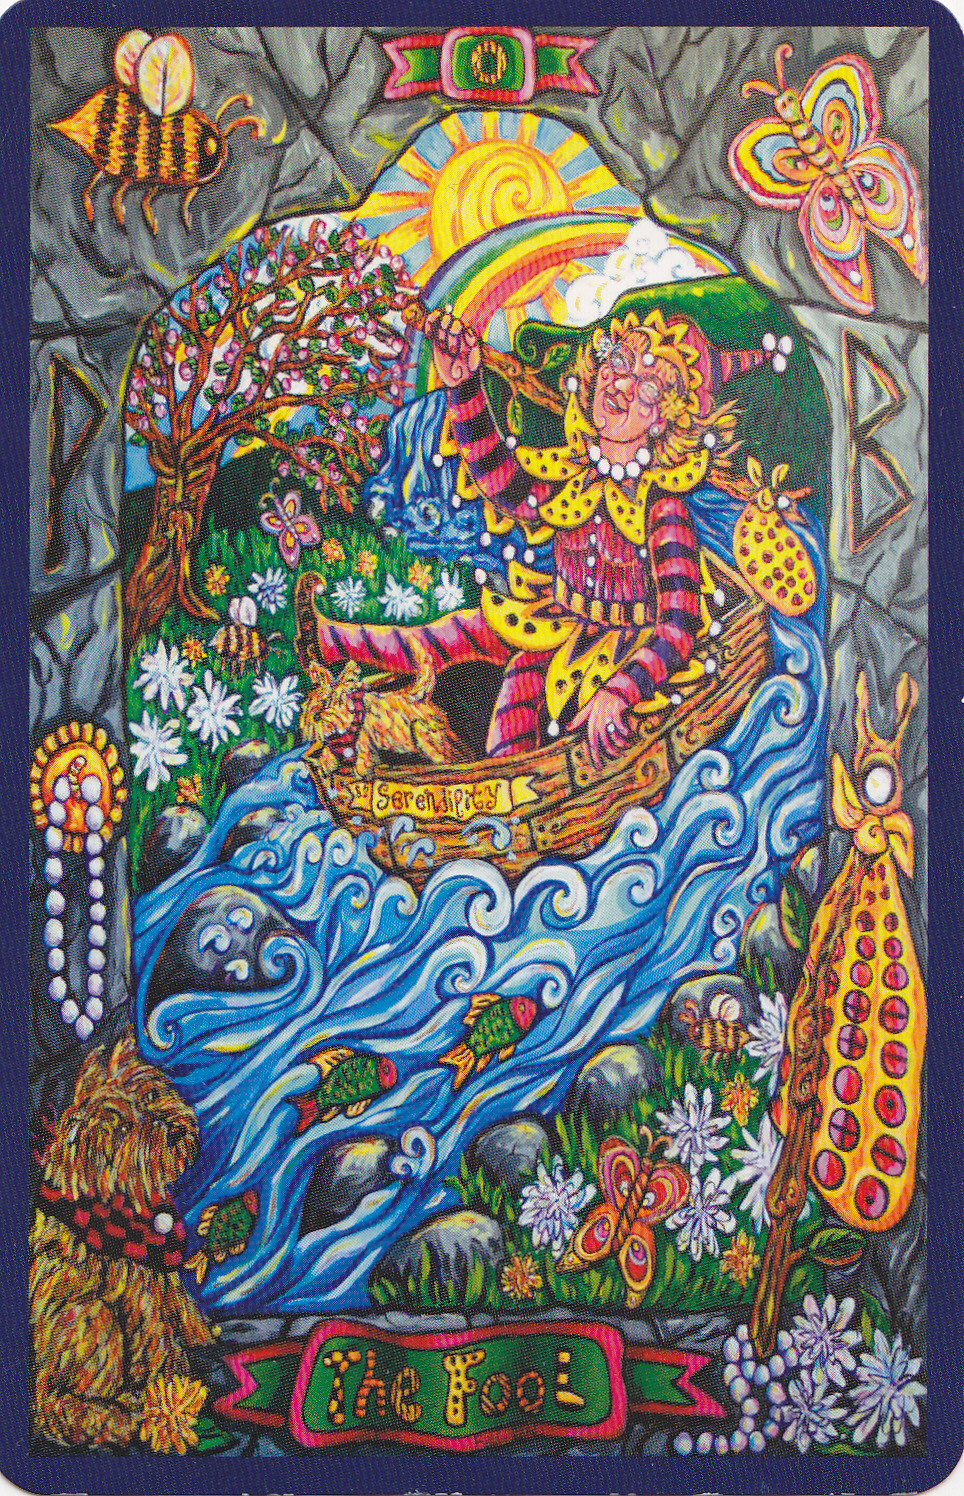 Rowan Tarot December 2012: Rowan Tarot: Messing About In Boats